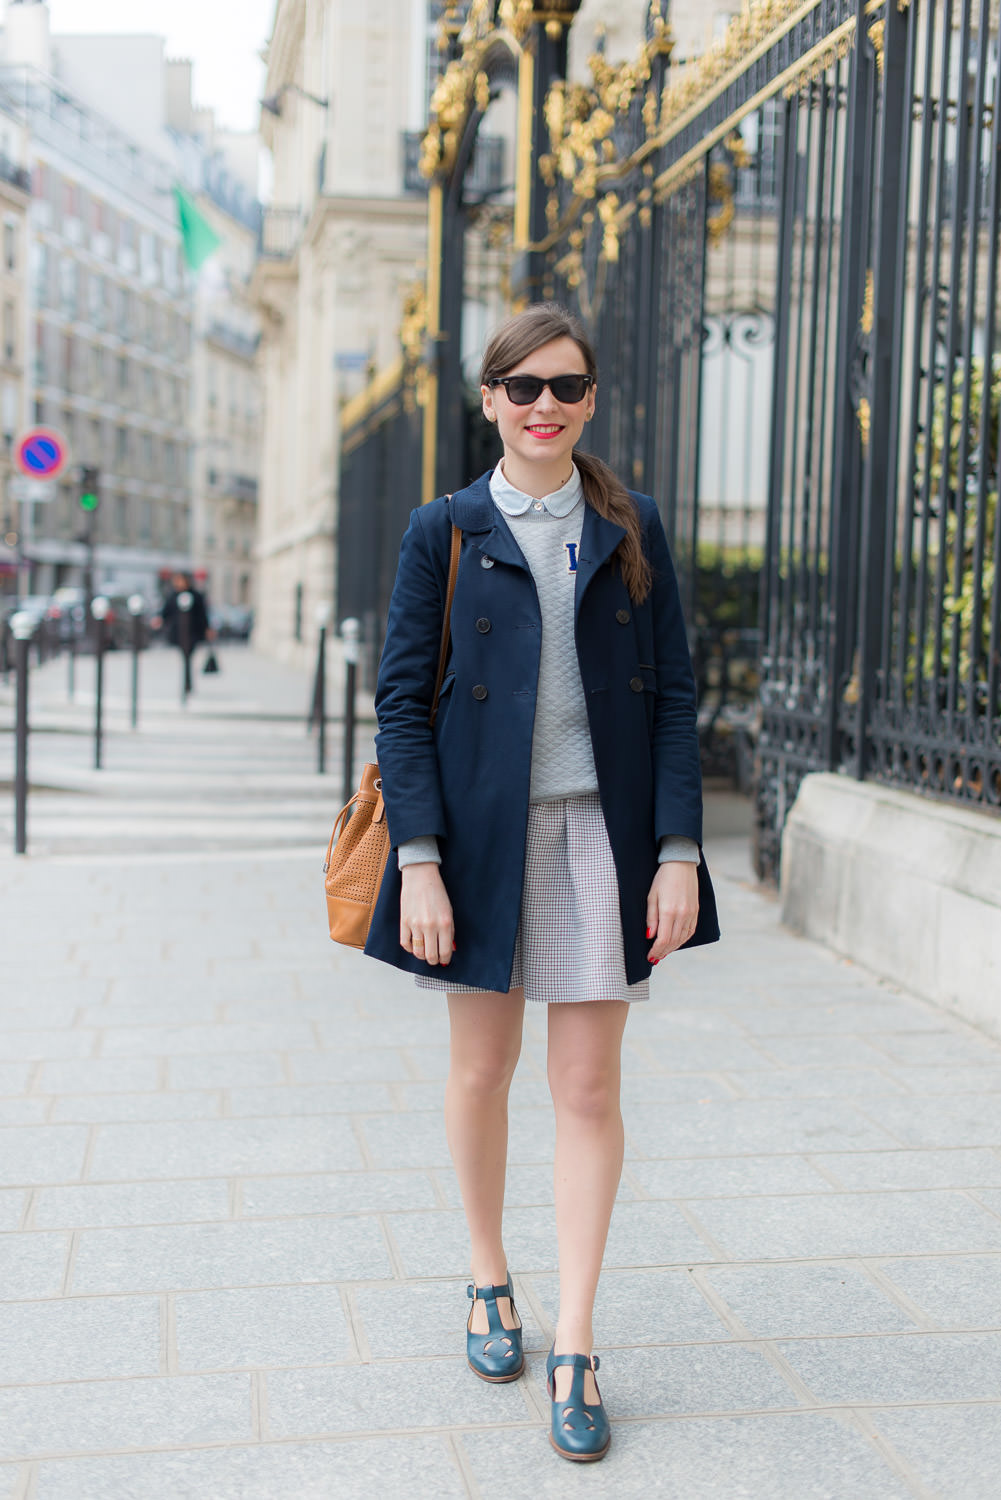 Blog-mode-Mode-And-The-City-looks-collaboration-clarks-orla-kiely (1 sur 11)